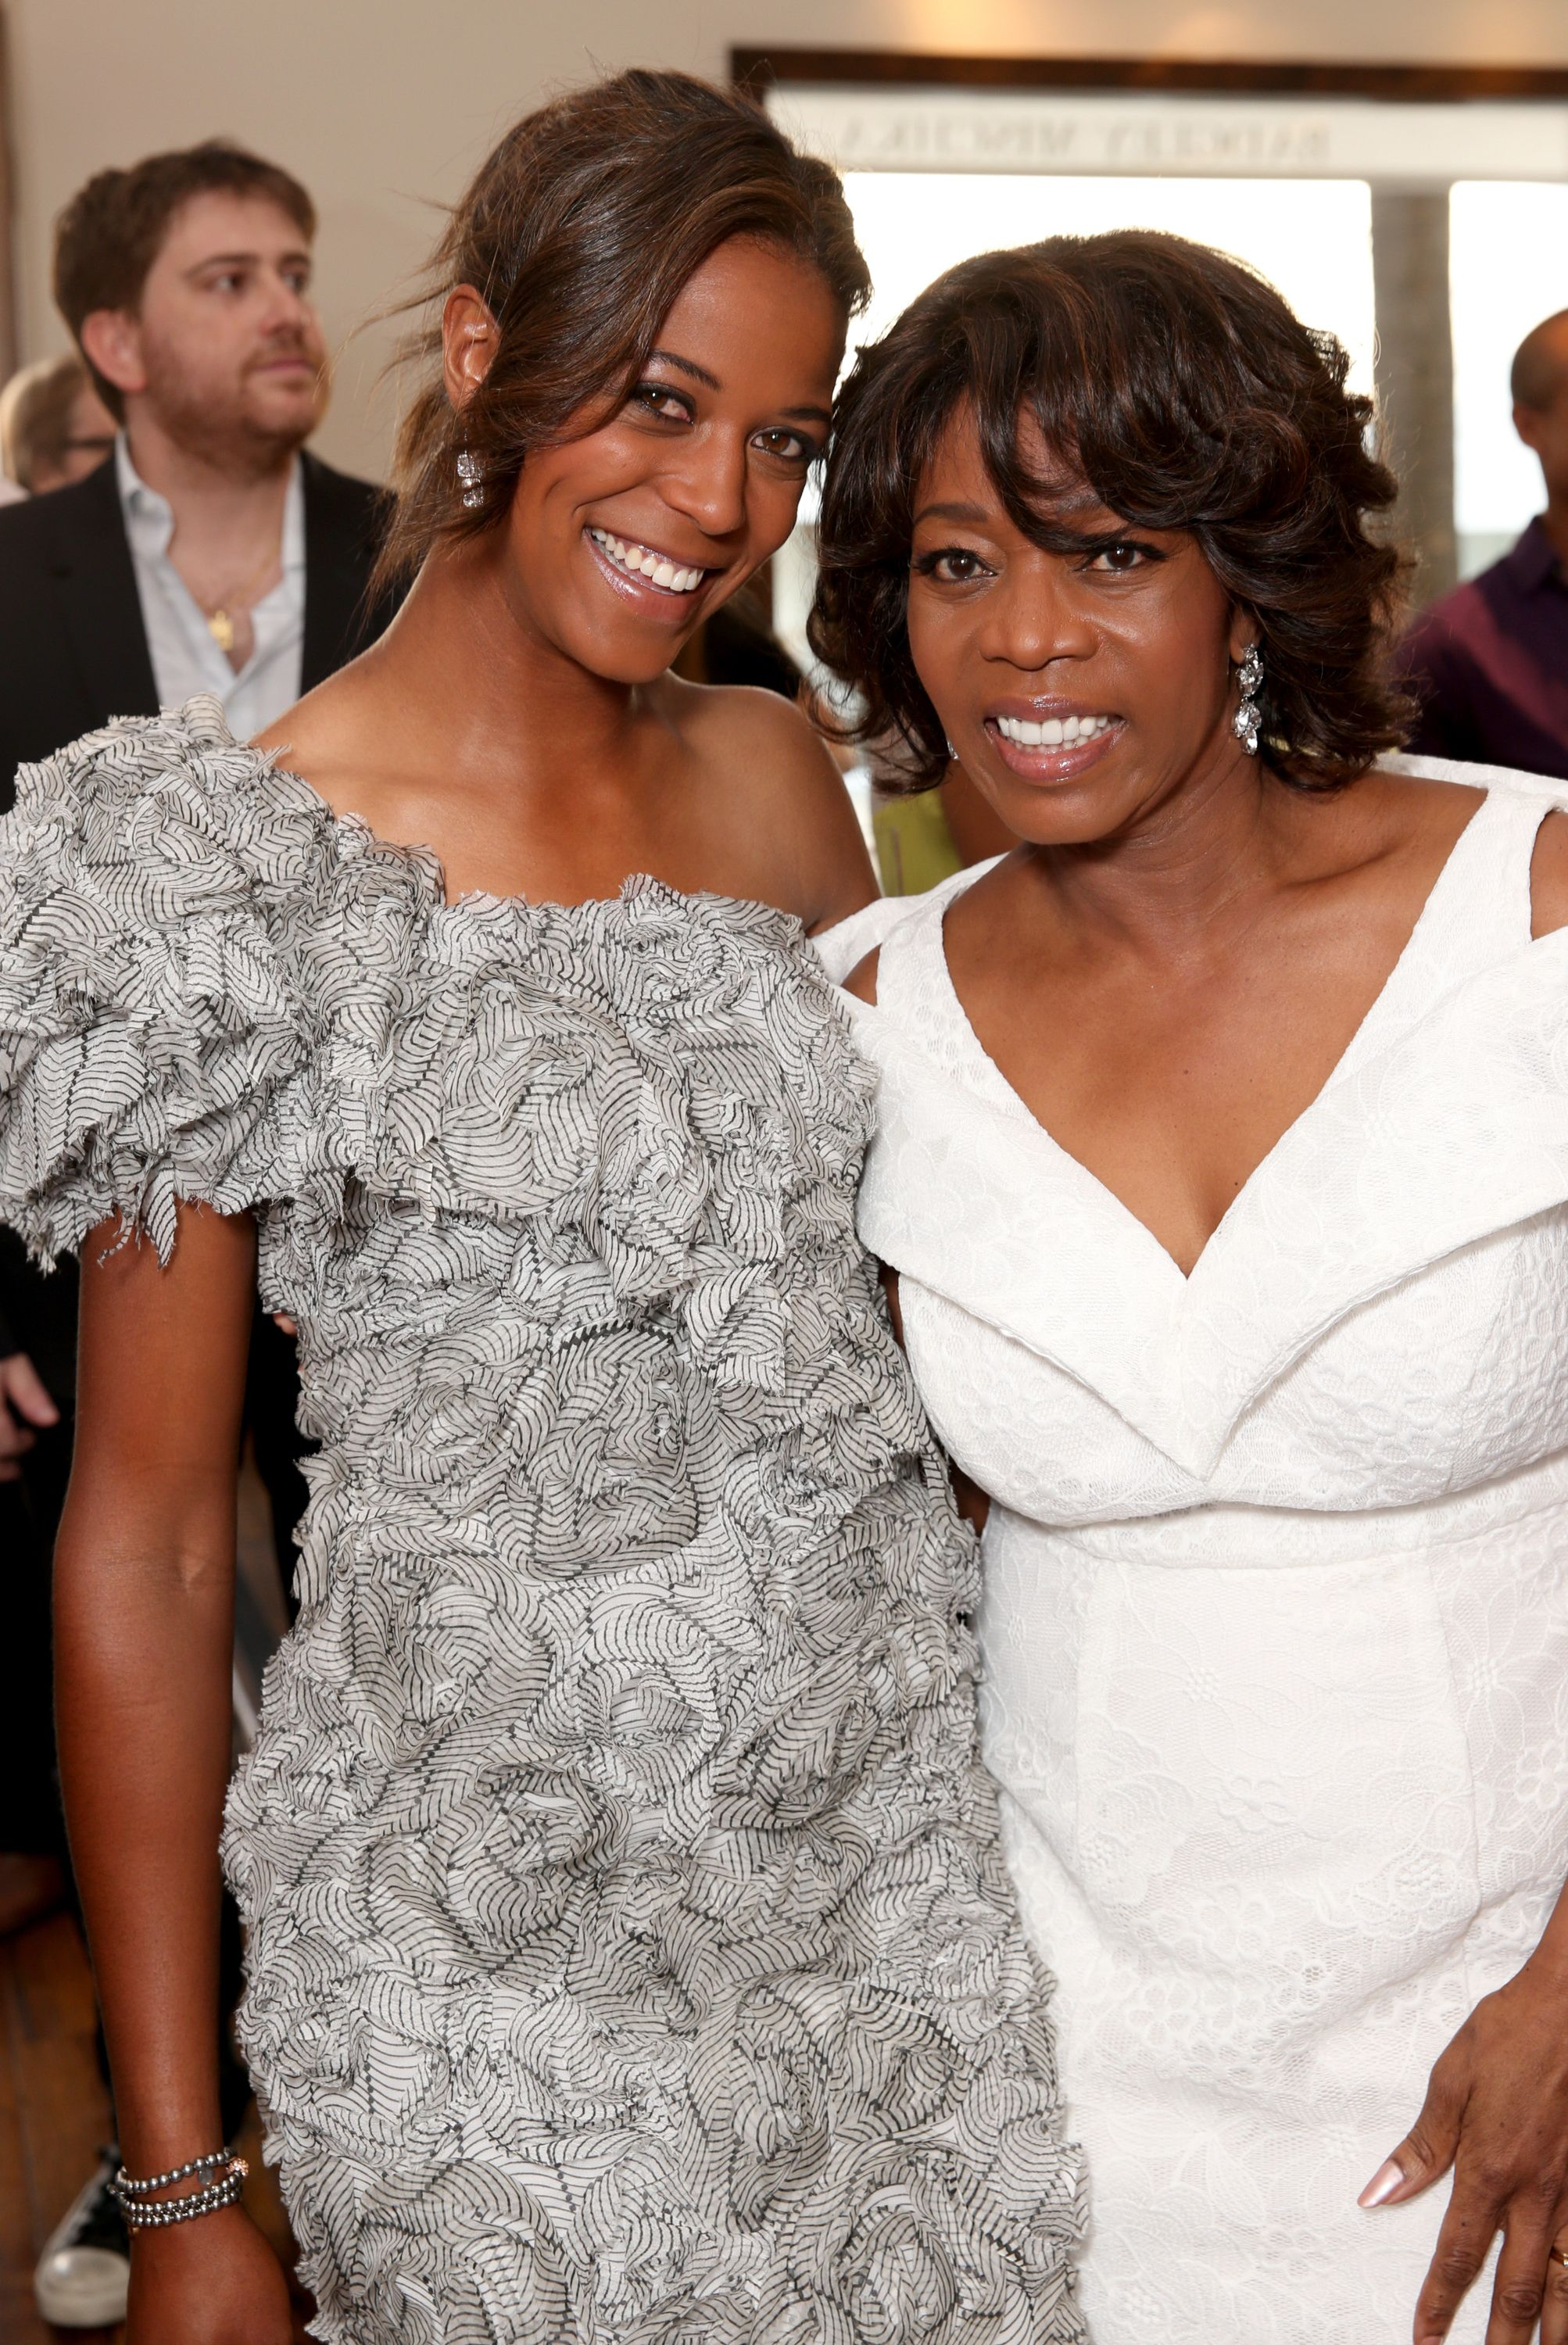 Alfre Woodard's daughter Mavis Spencer left the prospect of Hollywood behind to pursue a career as a professional equestrian. But prior to that, she was Miss Golden Globe for the 2010 ceremony.